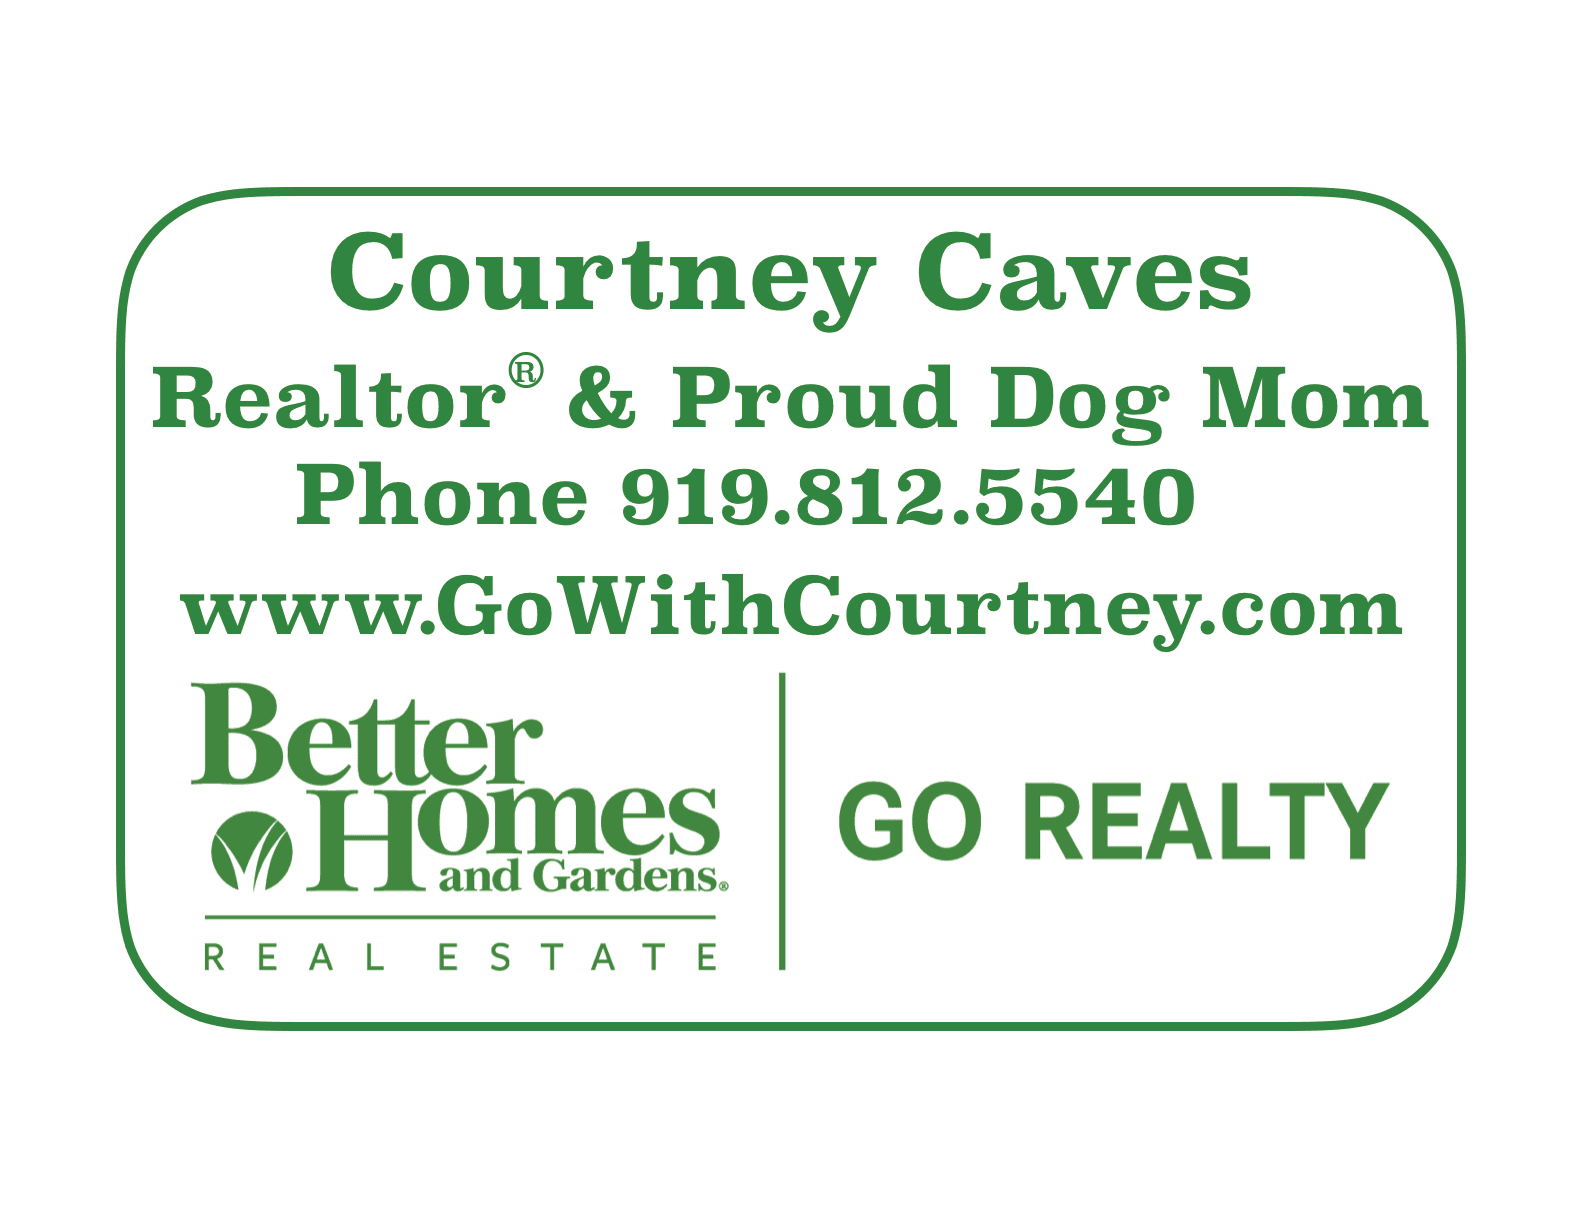 Courtney Caves logo for Dog Days